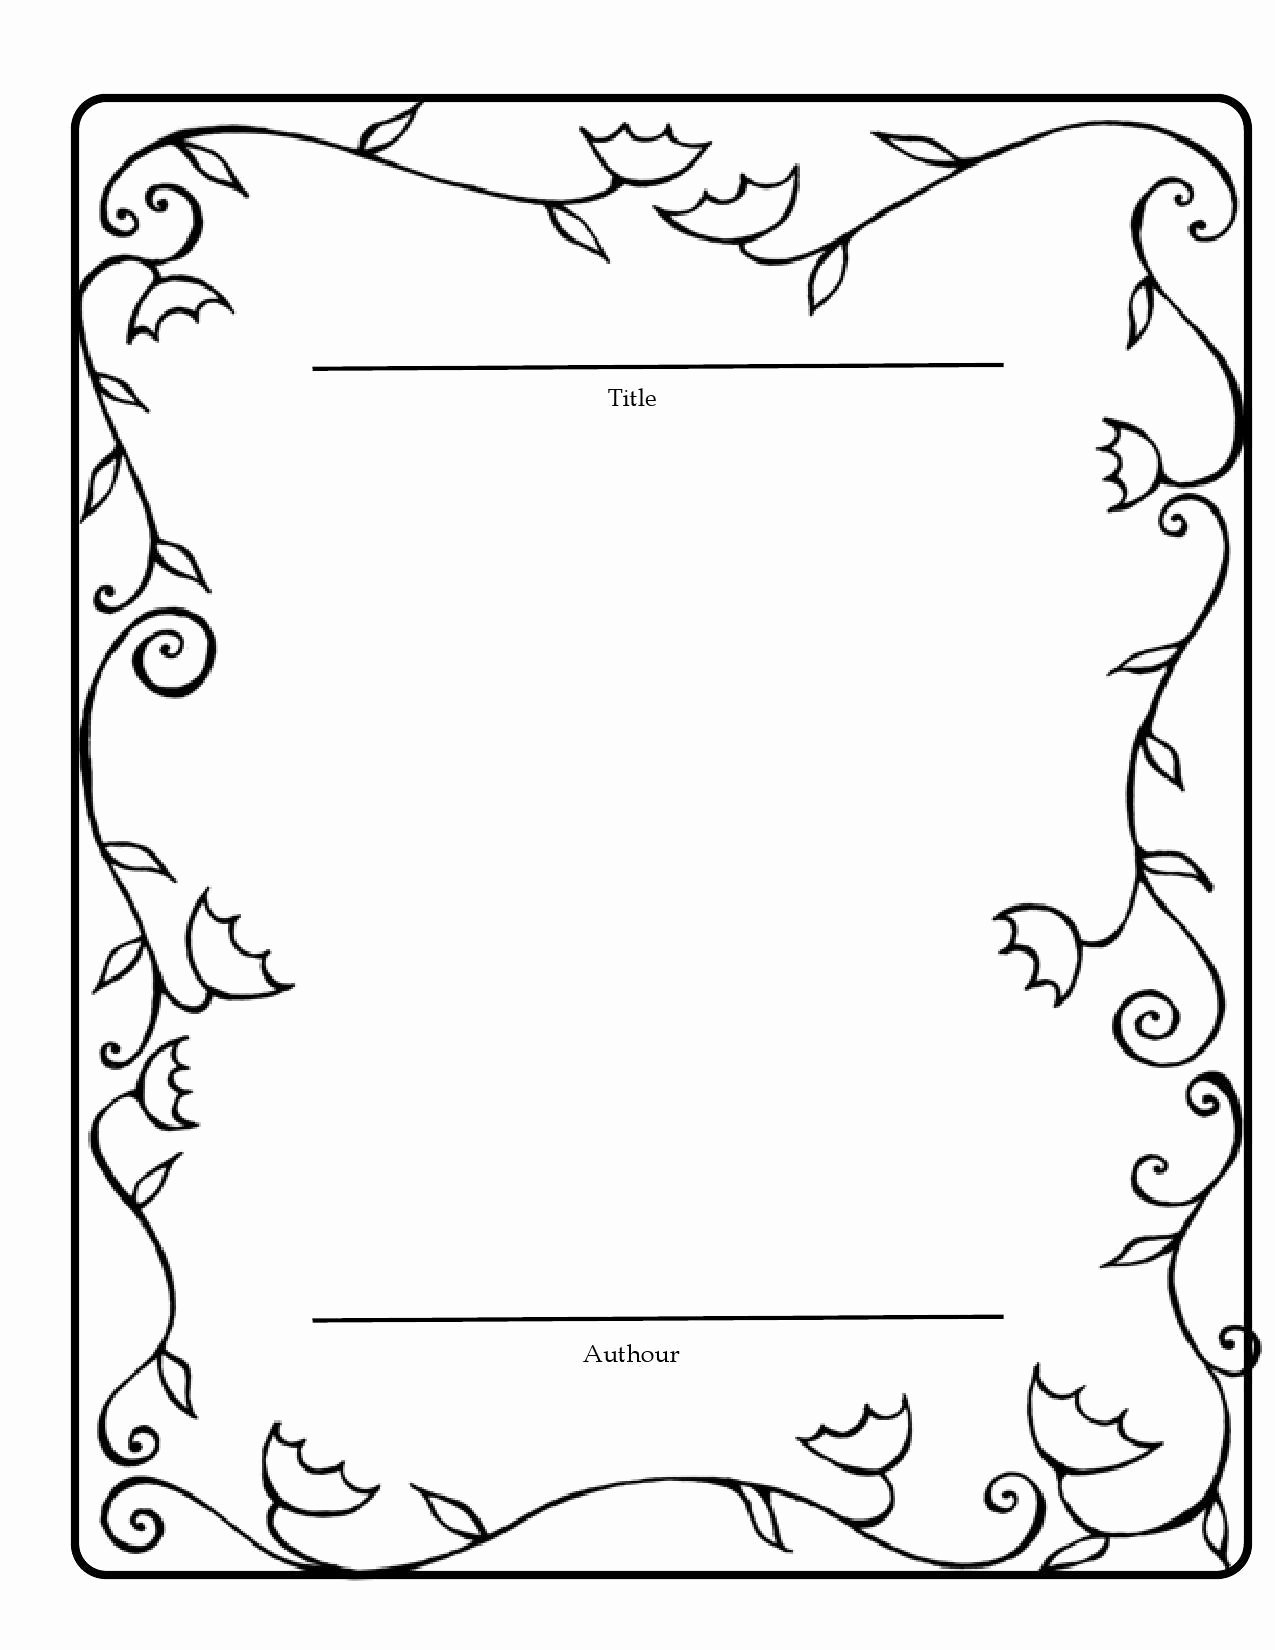 Fairy Tales Worksheets for Preschoolers Inspirational Fairy Tale Worksheet for Elementary Printable Worksheets and